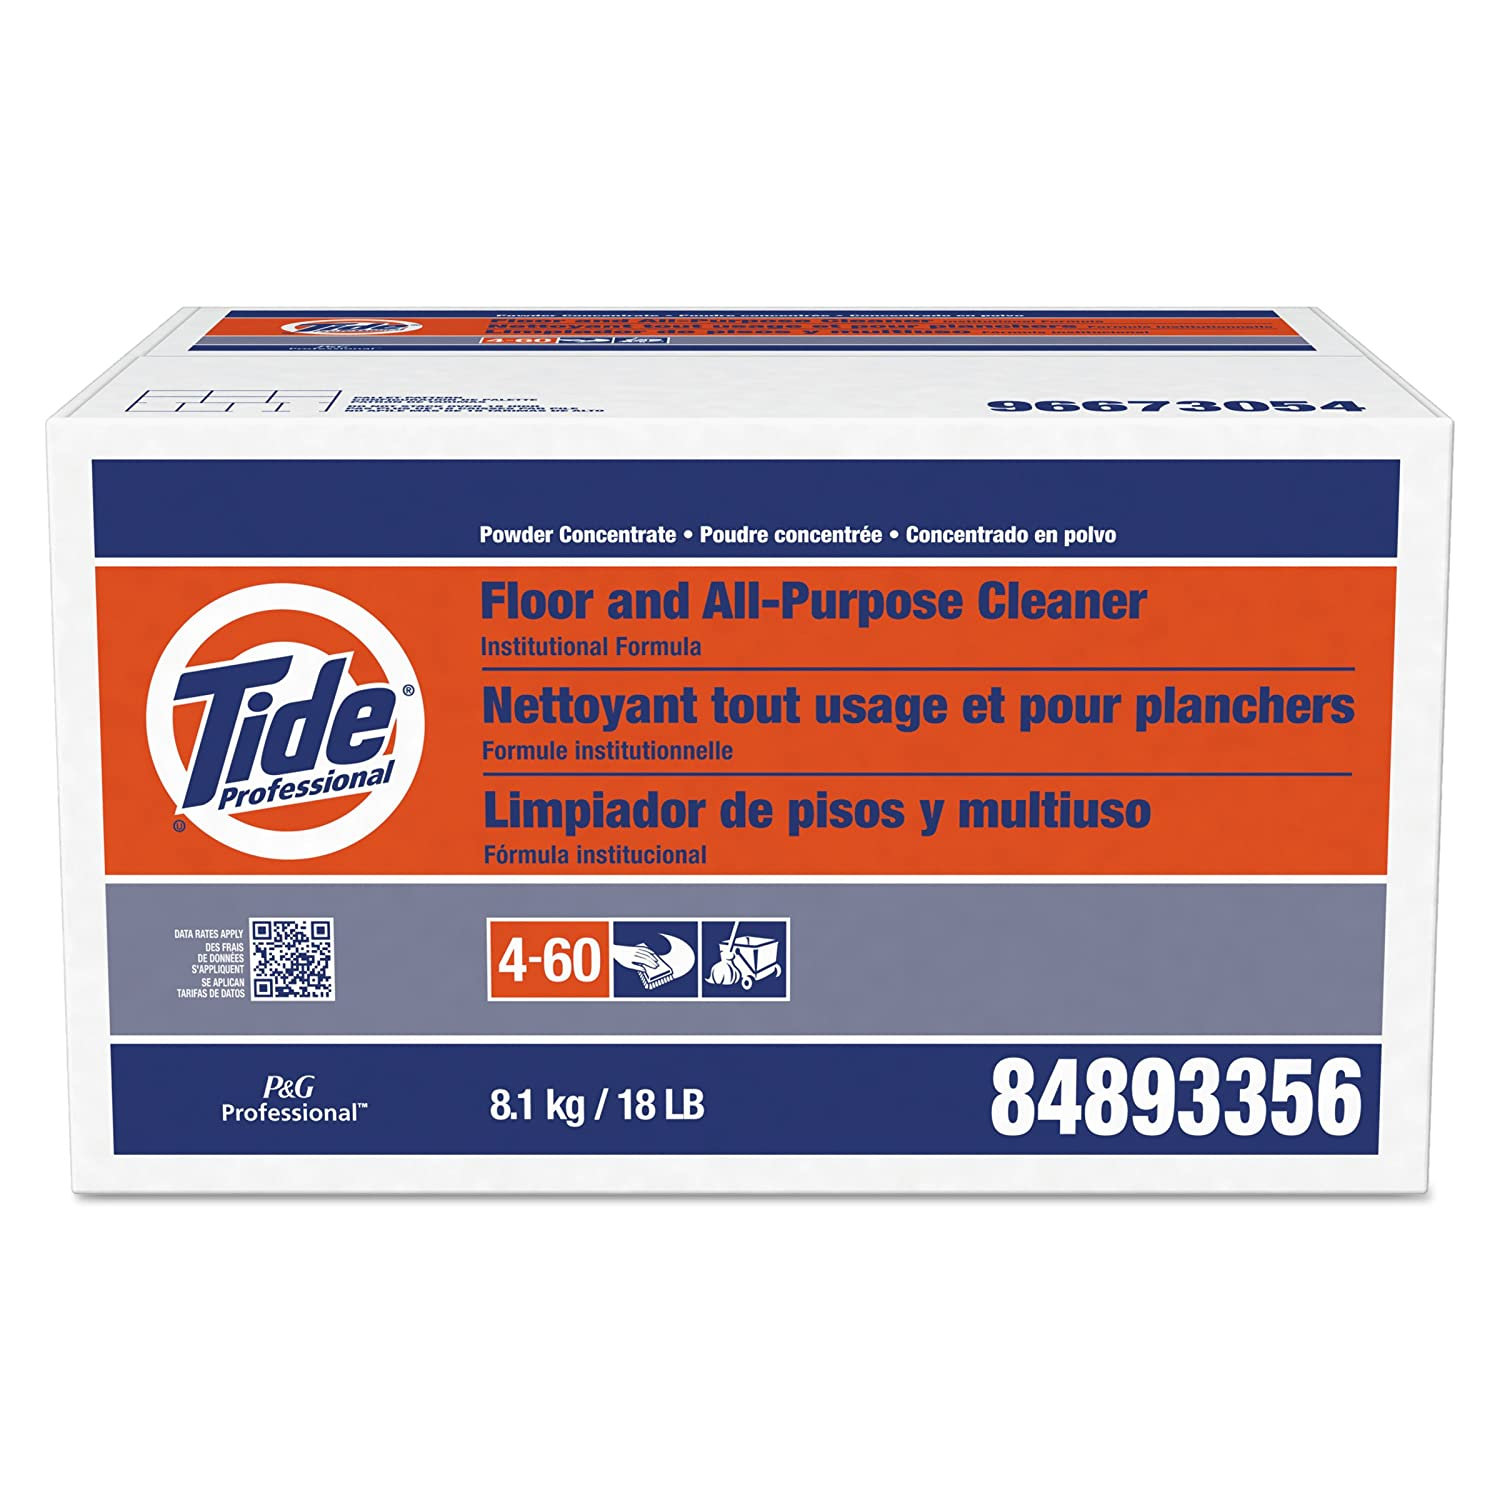 Tide 02370 Institutional Formula Floor & All-Purpose Cleaner, 1.5 Ounces (Case of 100) Procter & Gamble Professional 10037000023705 PAG02370